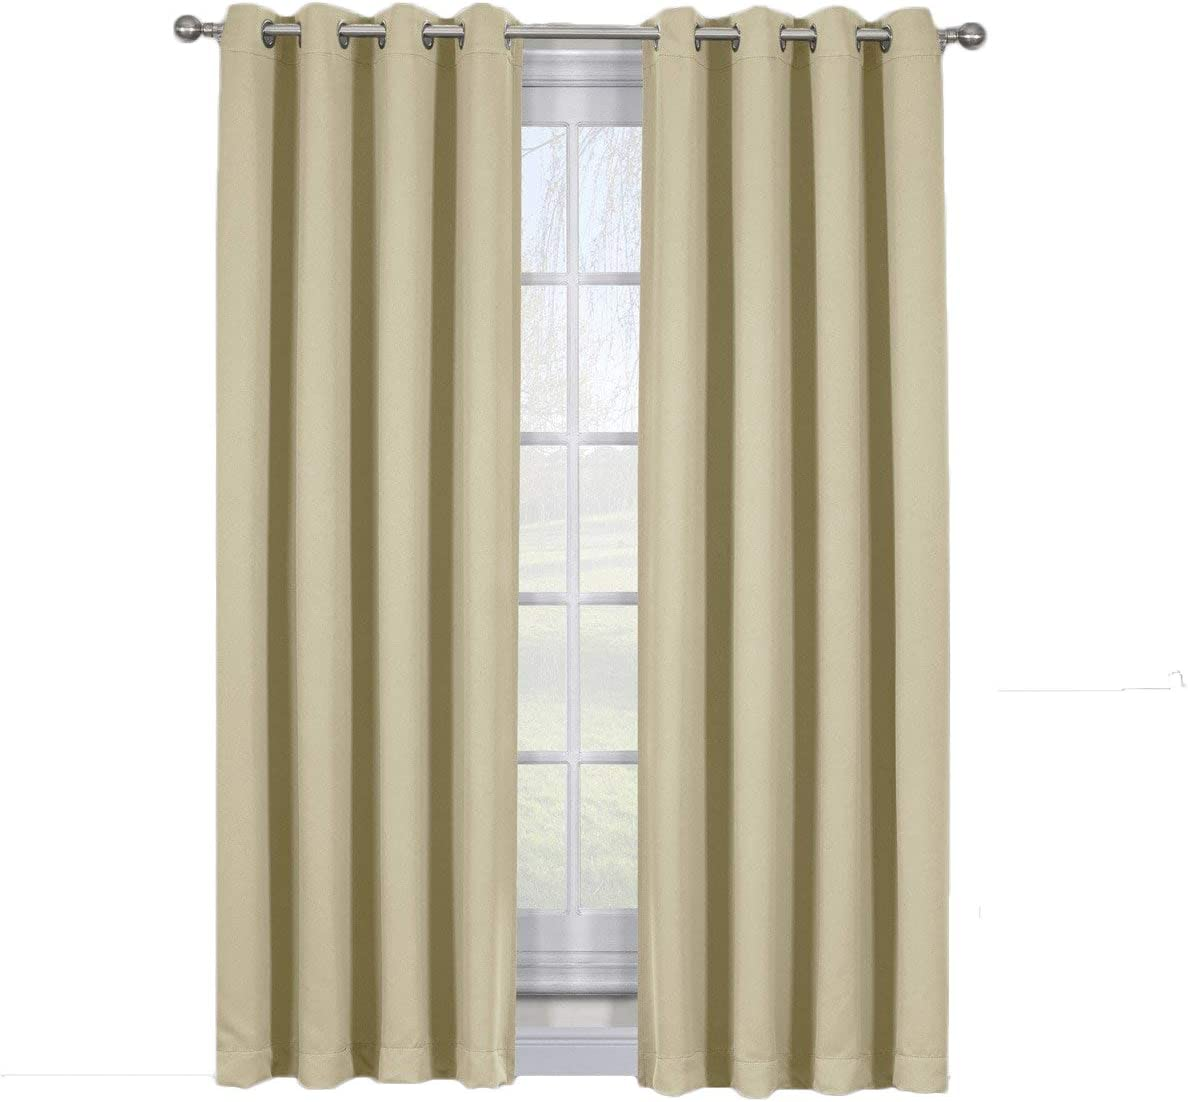 Royal Tradition Ava 108-Inch Wide-by-108-Inch Long, Set of 2, Triple Weave-Blackout Curtains with Tie Backs, Beige